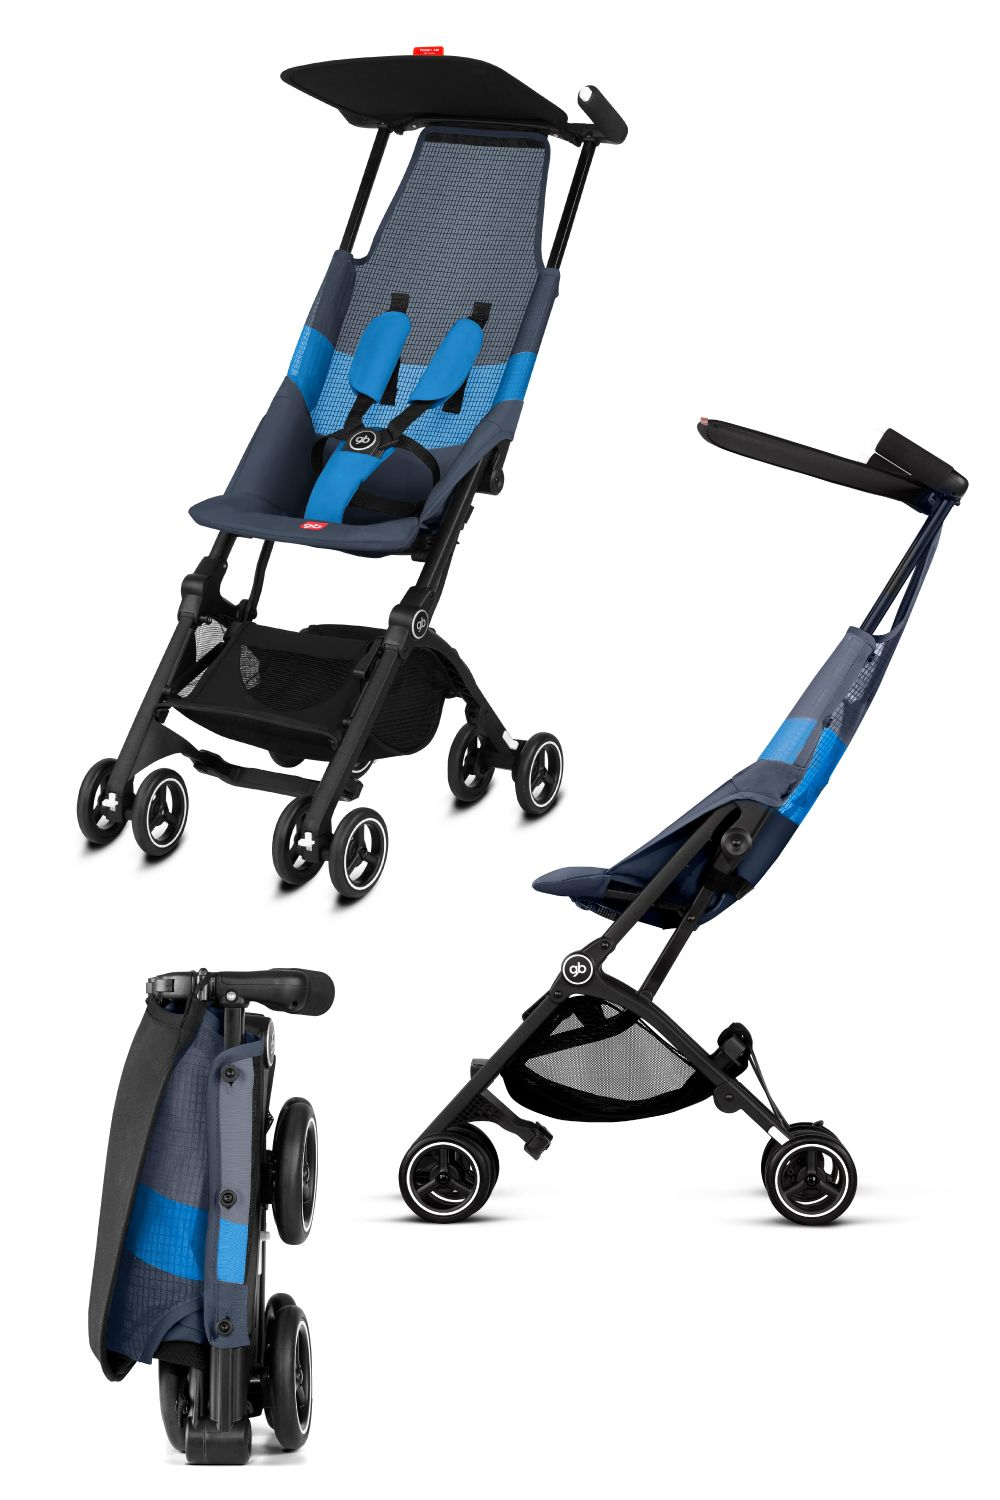 GB Pockit Air AllTerrain Stroller Traveling by yourself